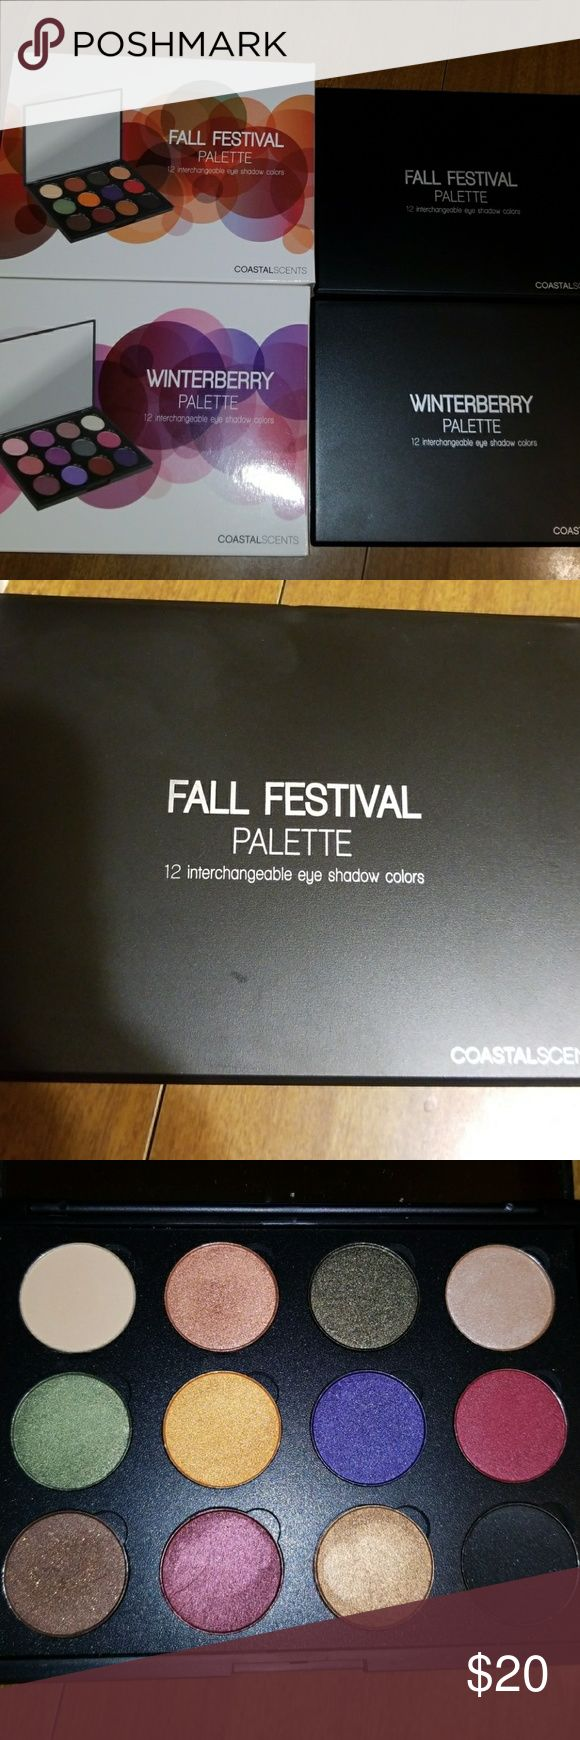 Coastal Scents Eyeshadow palettes Two palettes from coastal scents. The fall festival and winterberry 12 pan eyeshadow palettes. Only swatched both of these. Comes with mirrors inside the palettes and original boxes. coastal scents Makeup Eyeshadow